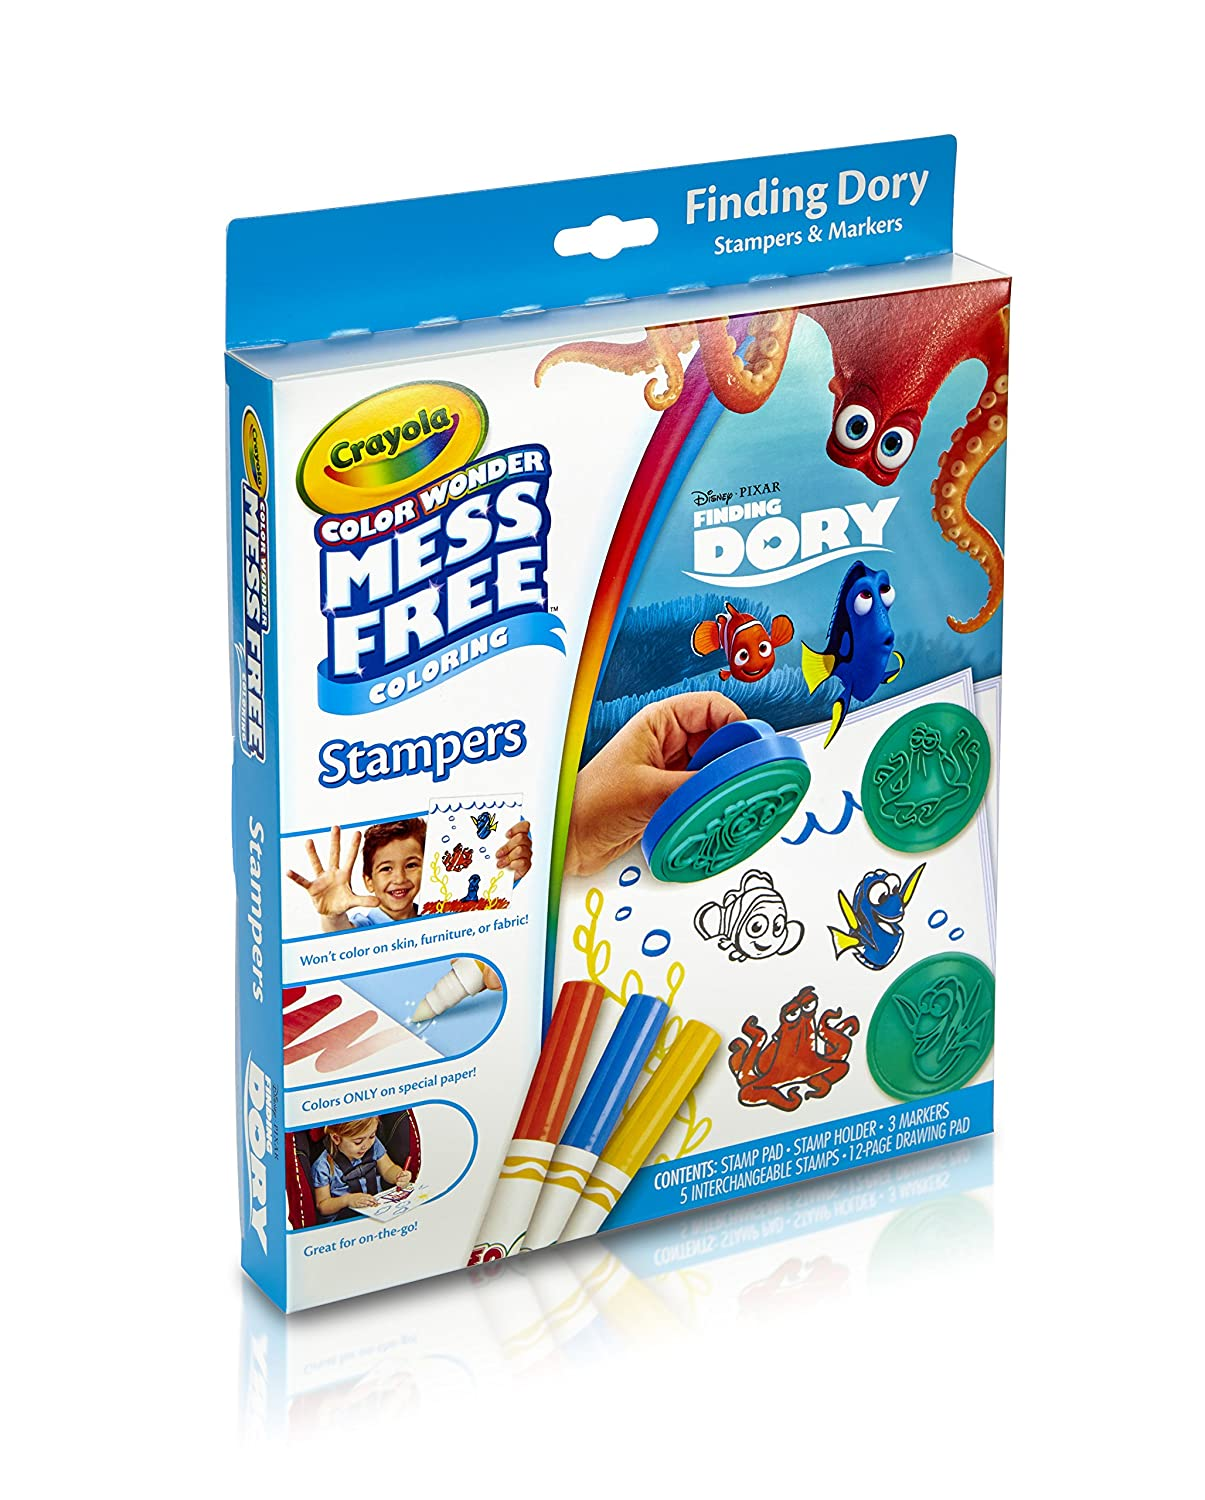 Amazon.com: Crayola, Color Wonder Mess-Free Coloring, Finding Dory ...